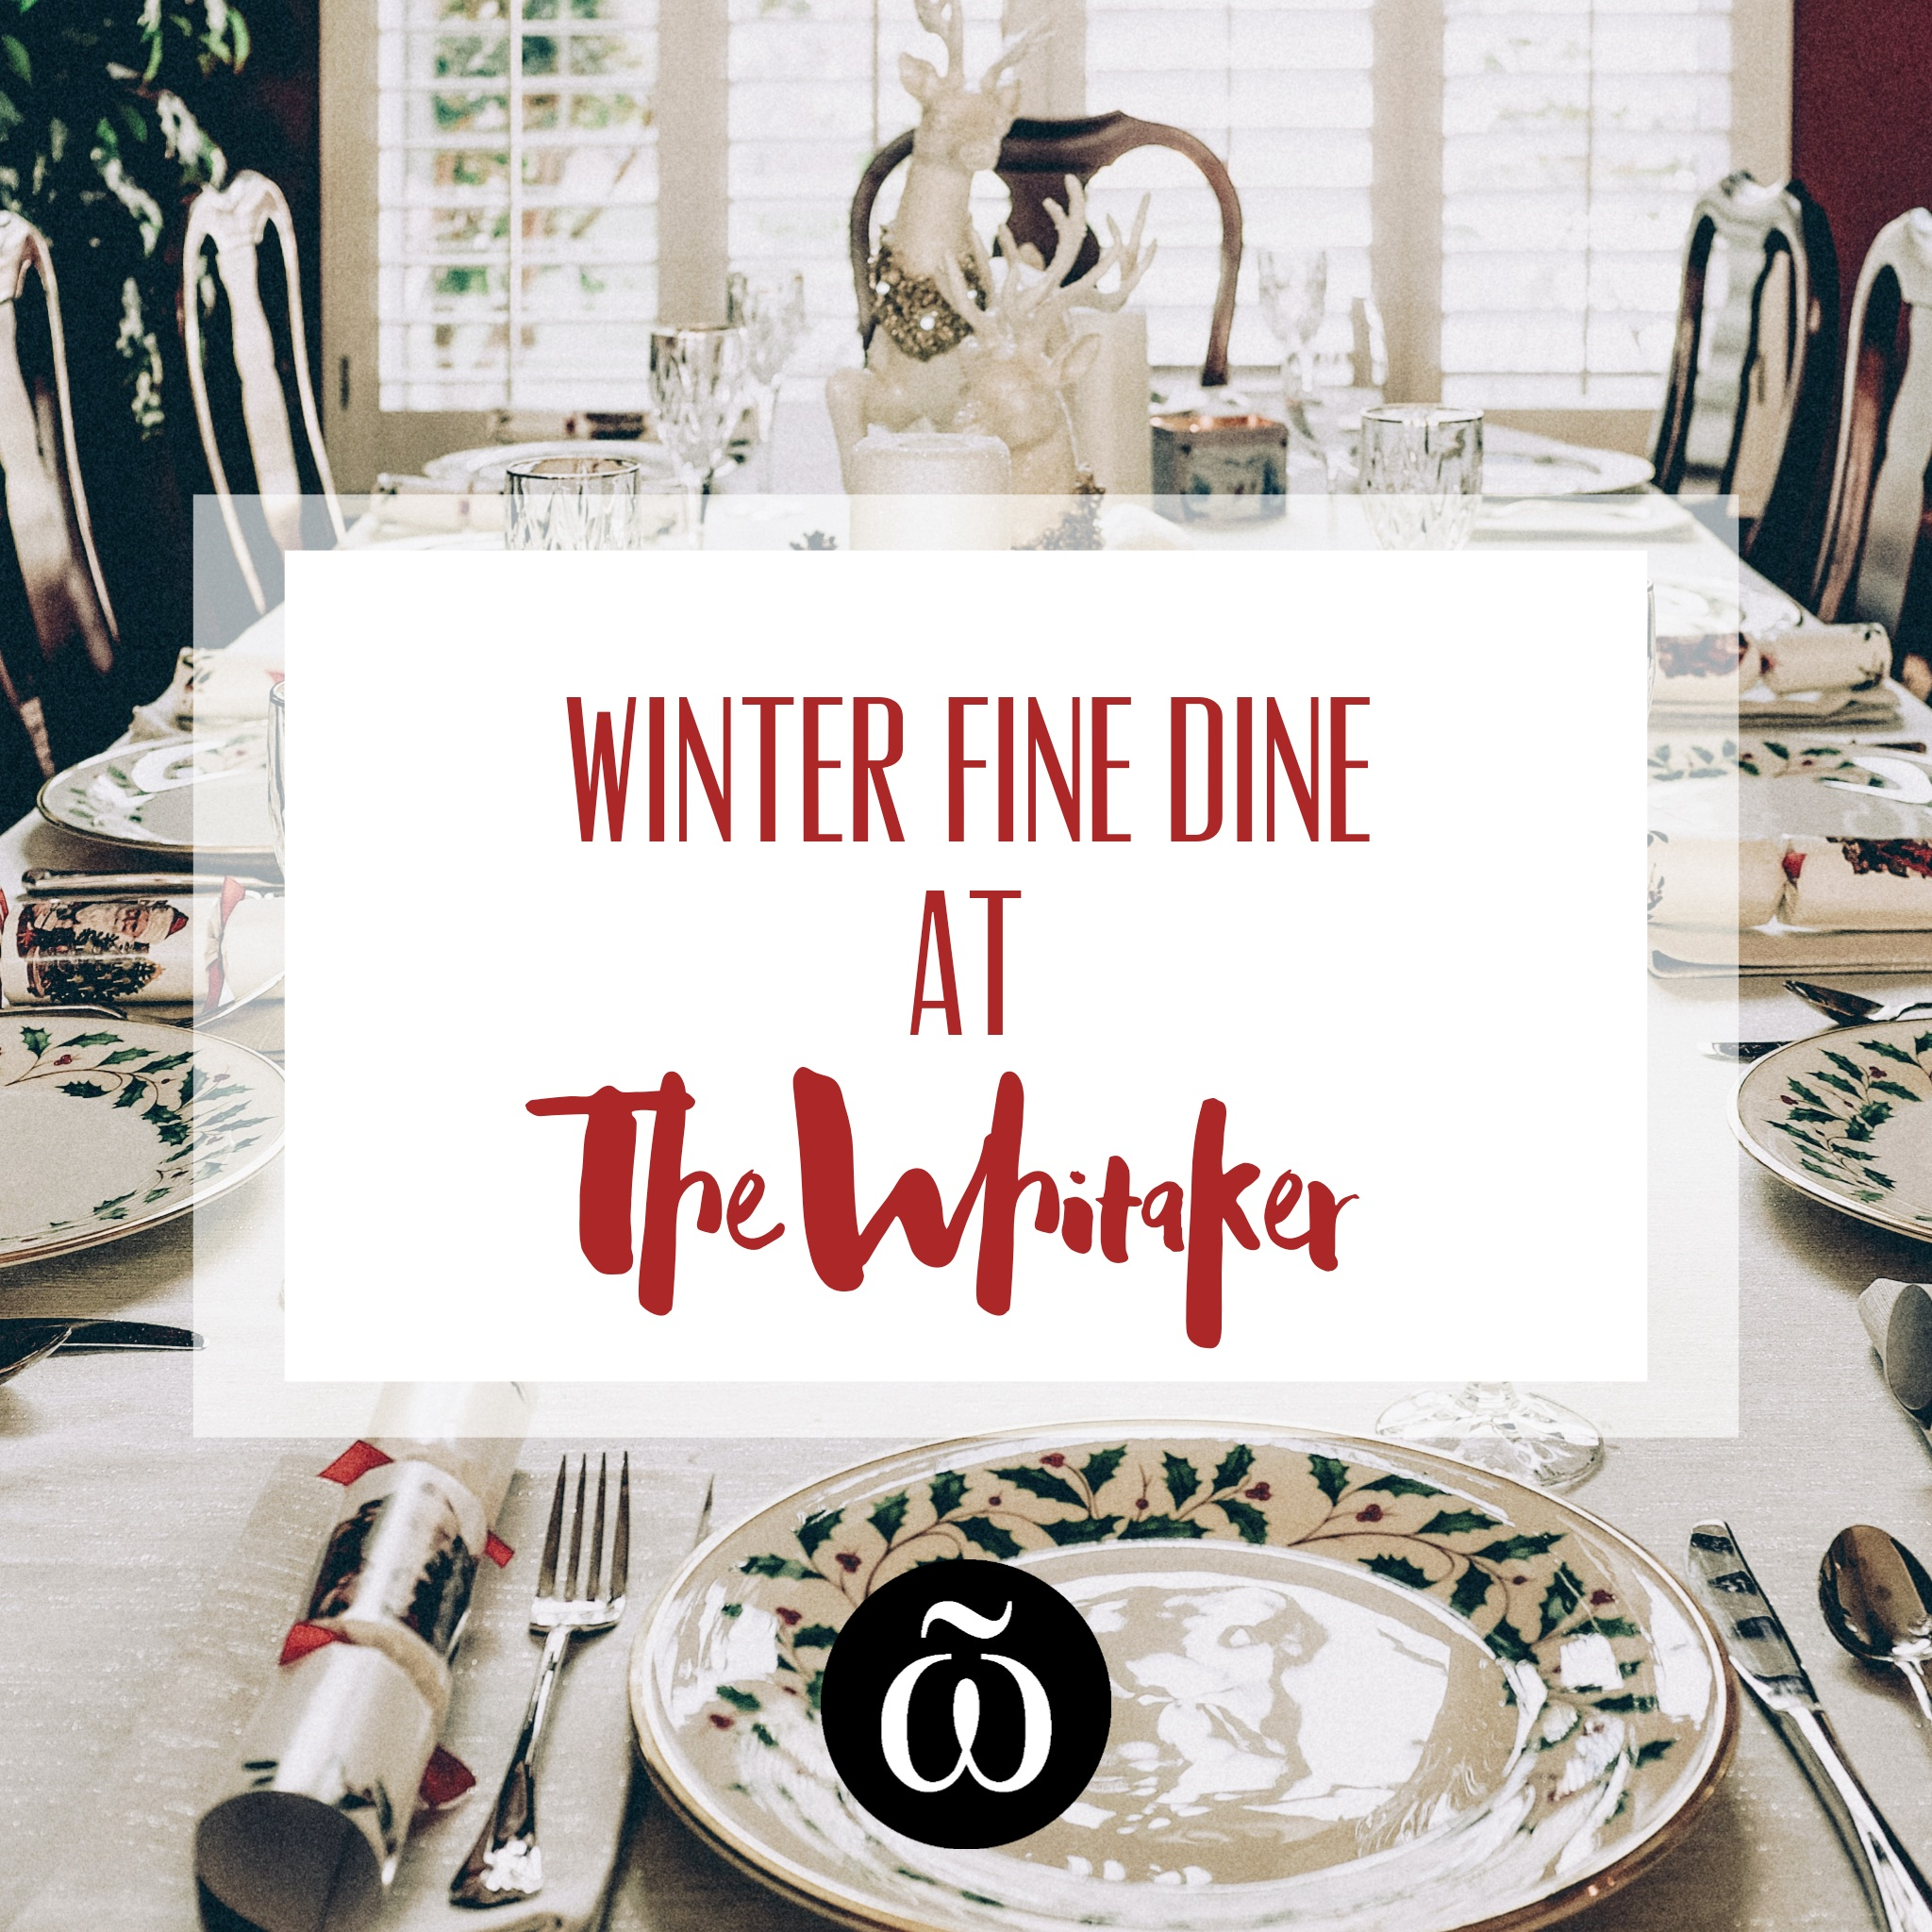 Winter fine dining at the Whitaker